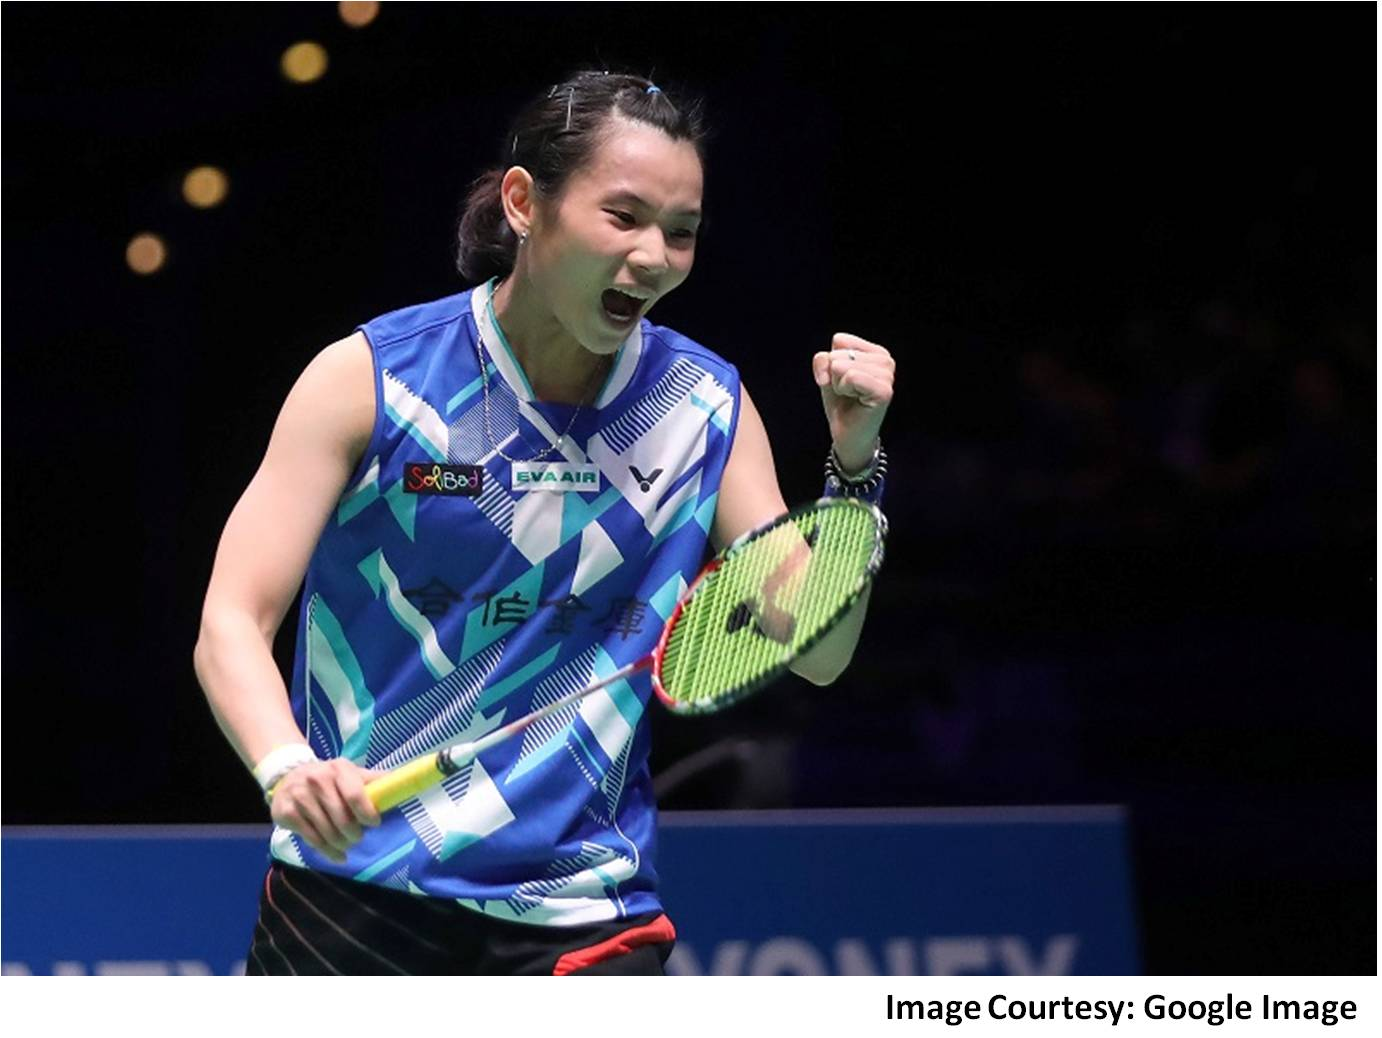 Tai_Tzu_Ying_Best_ Badminton_Player